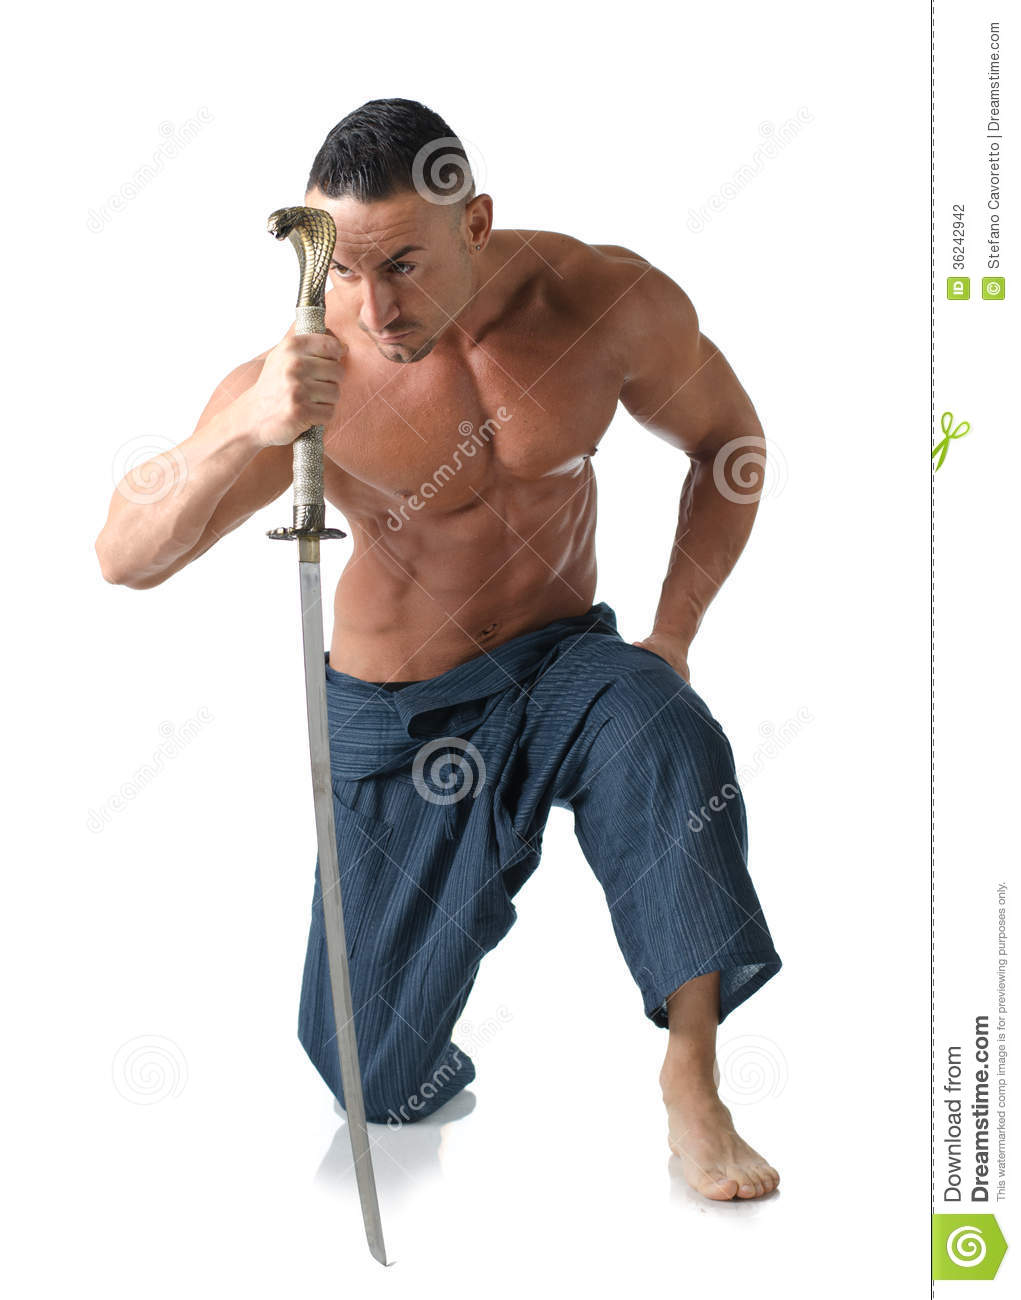 Muscular Man Kneeling On The Floor Shirtless With